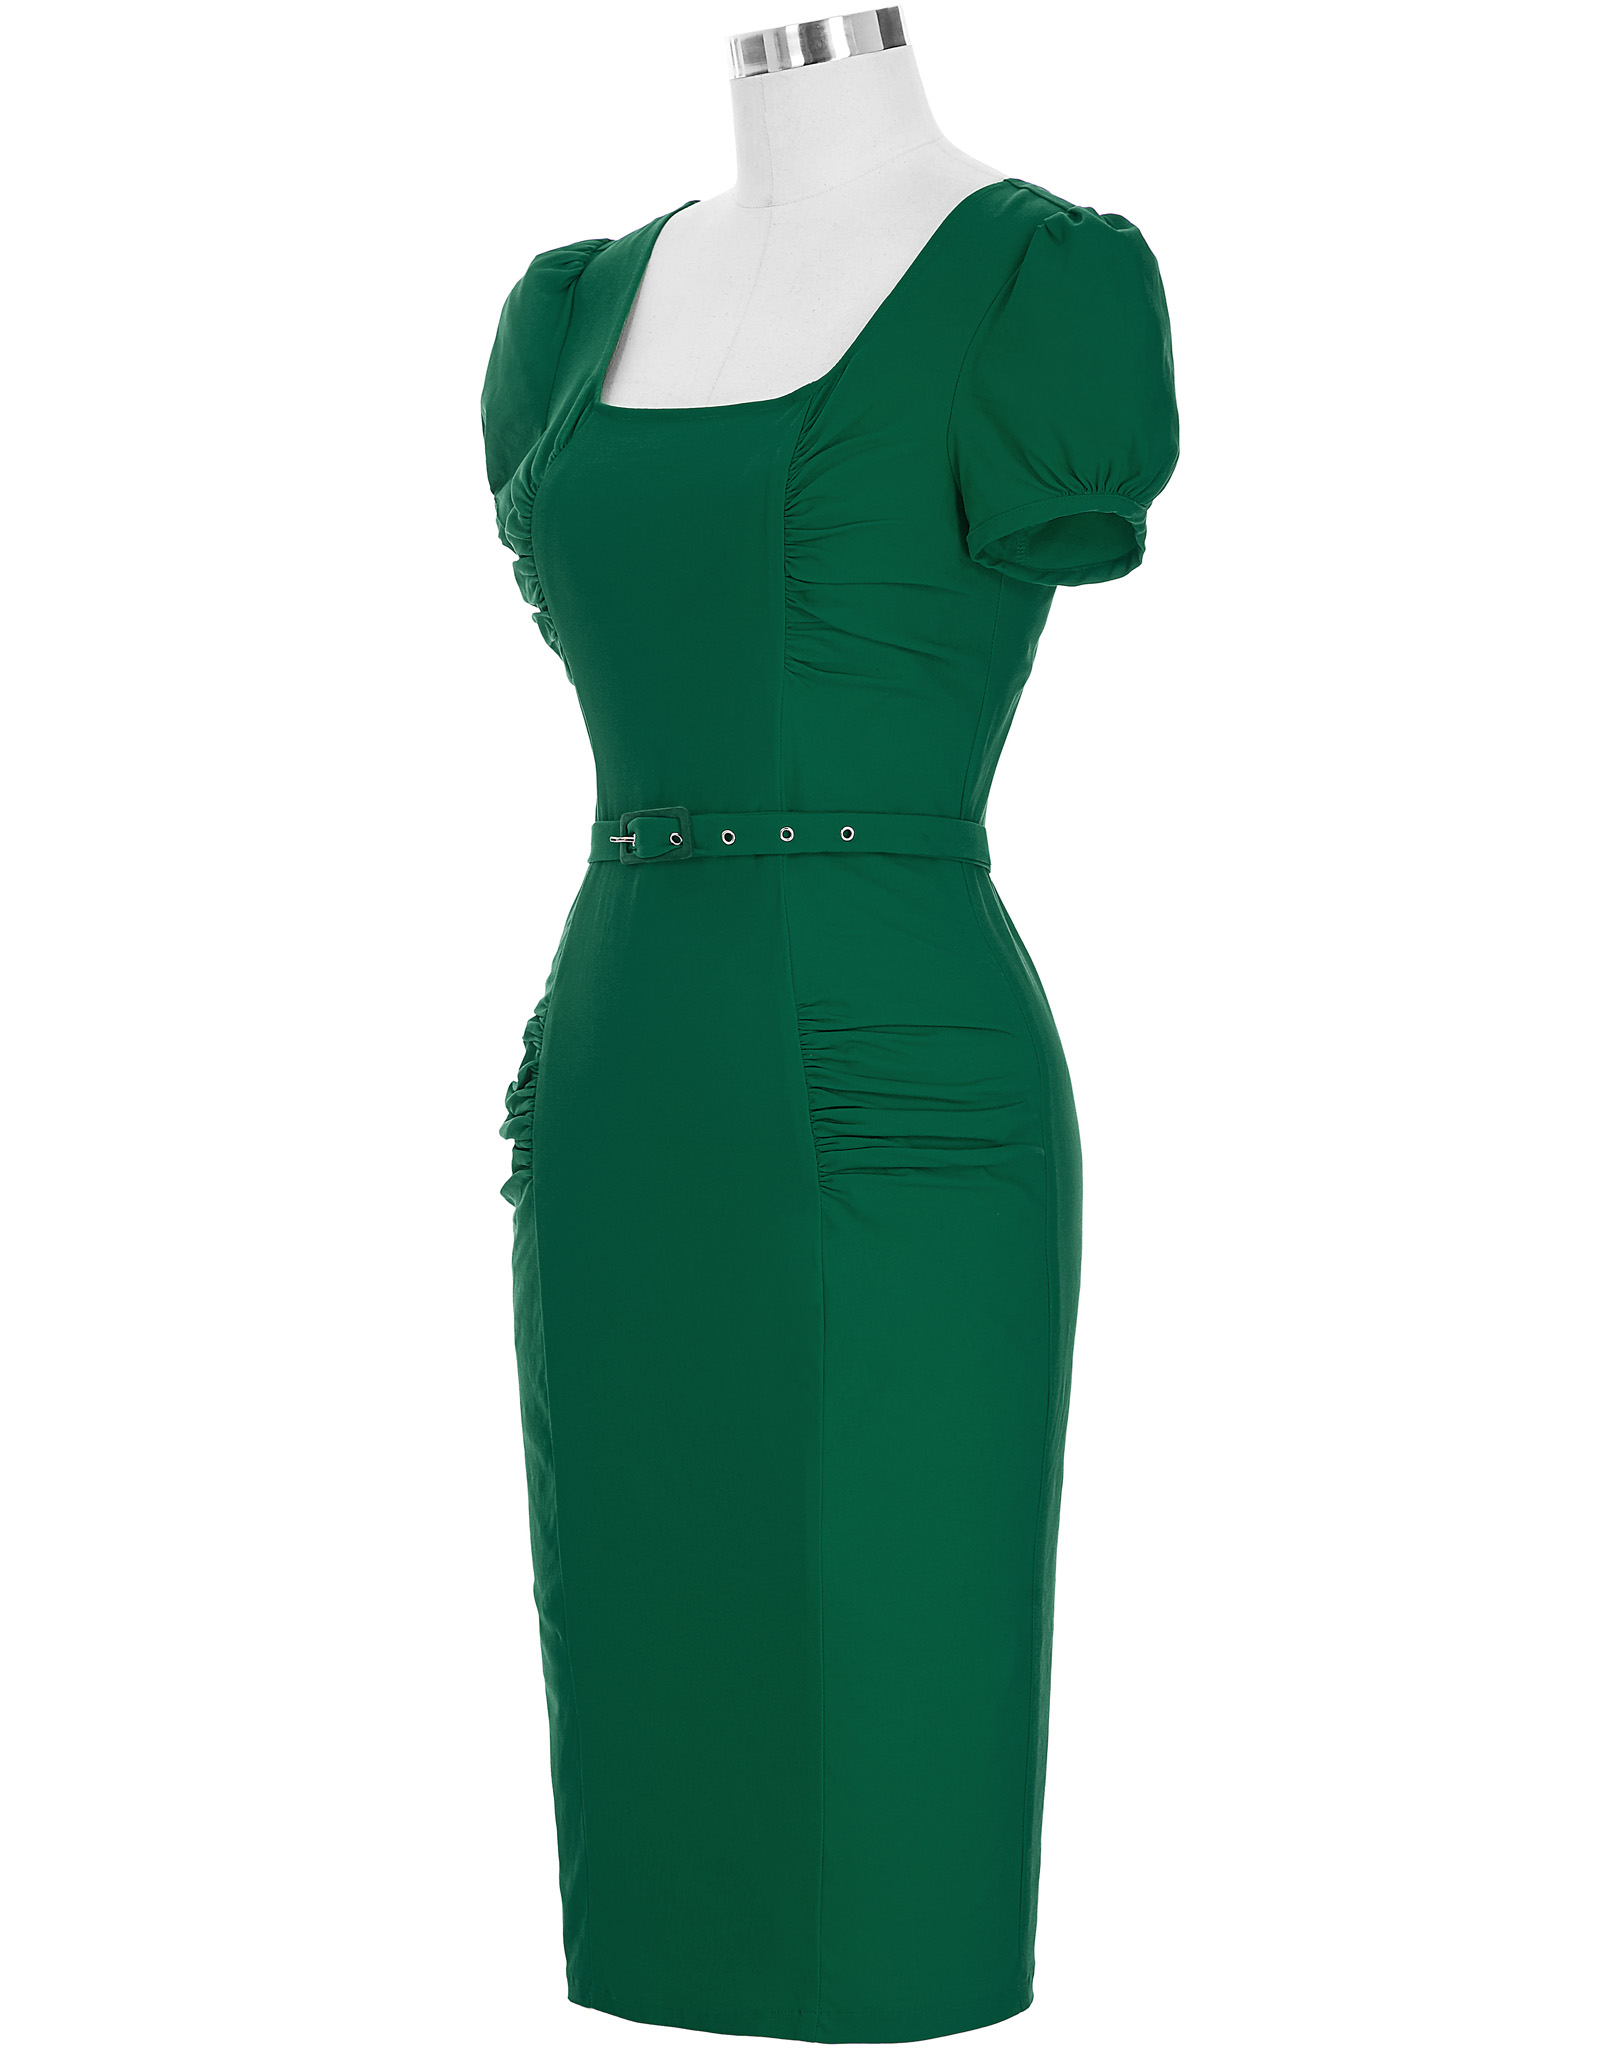 Us 1203 15 Offladies Vintage 1940s 50s Wiggle Dress Cocktail Party Bodycon Pencil Dress Sale In Dresses From Womens Clothing On Aliexpresscom